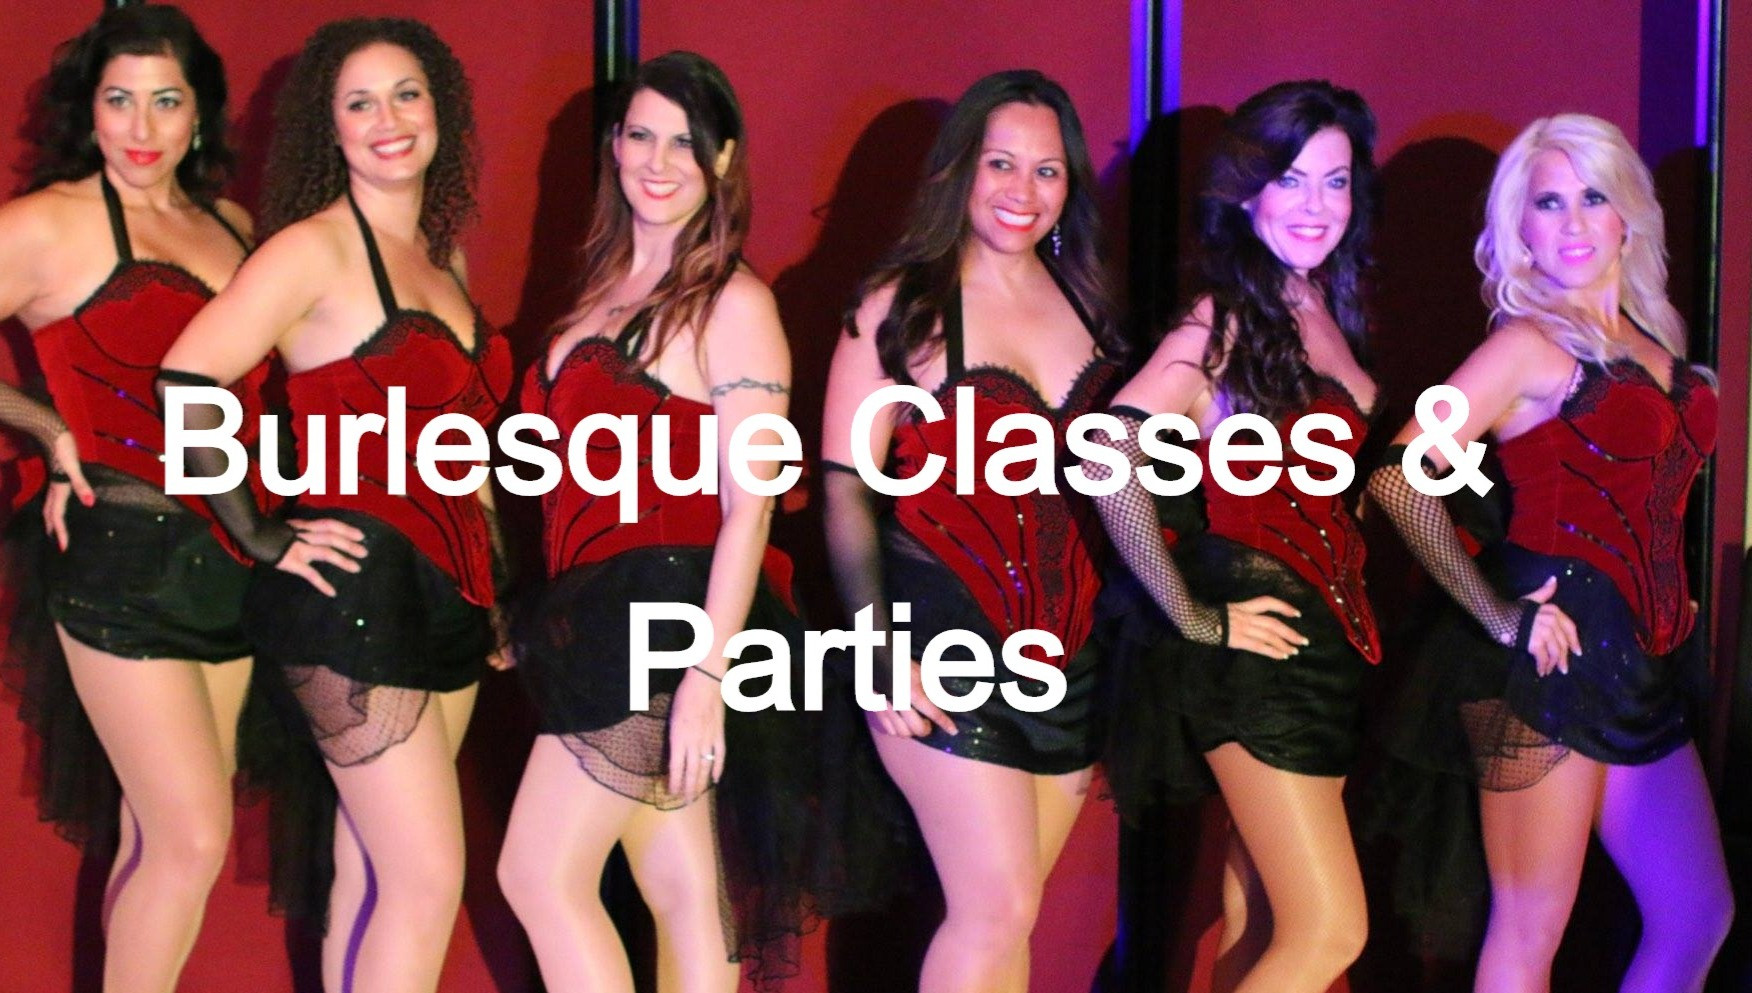 Burlesque Classes & Parties